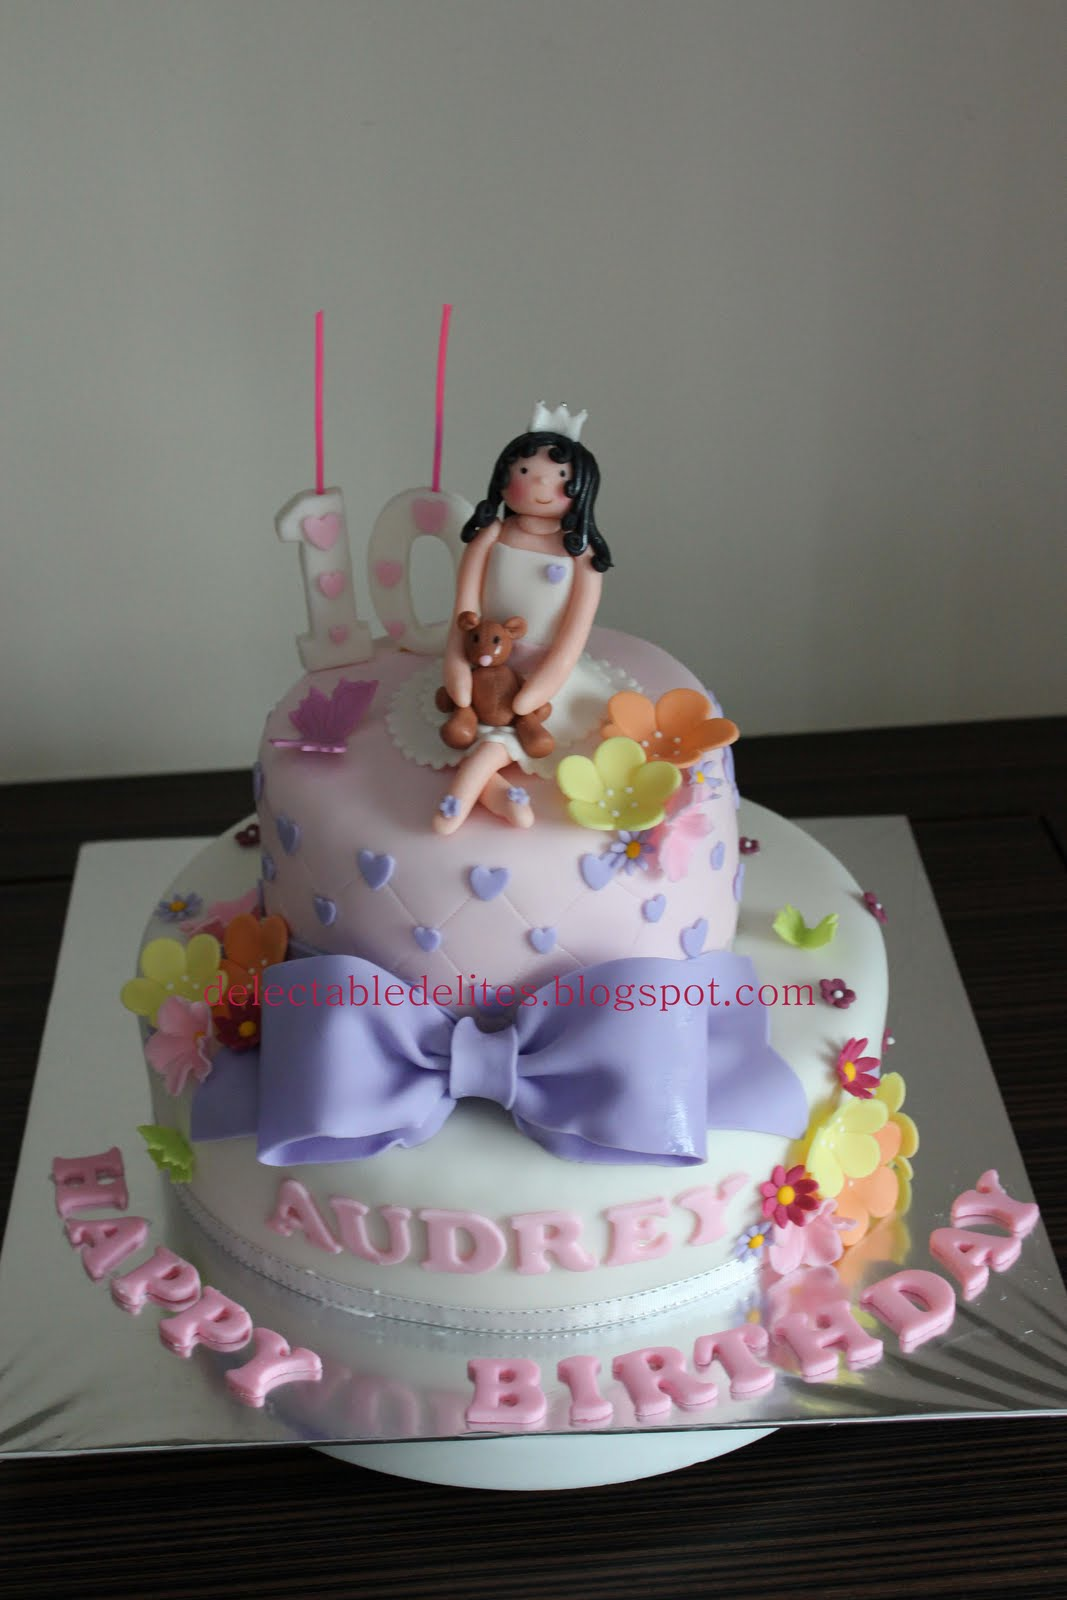 Delectable Delites Princess Theme Cake